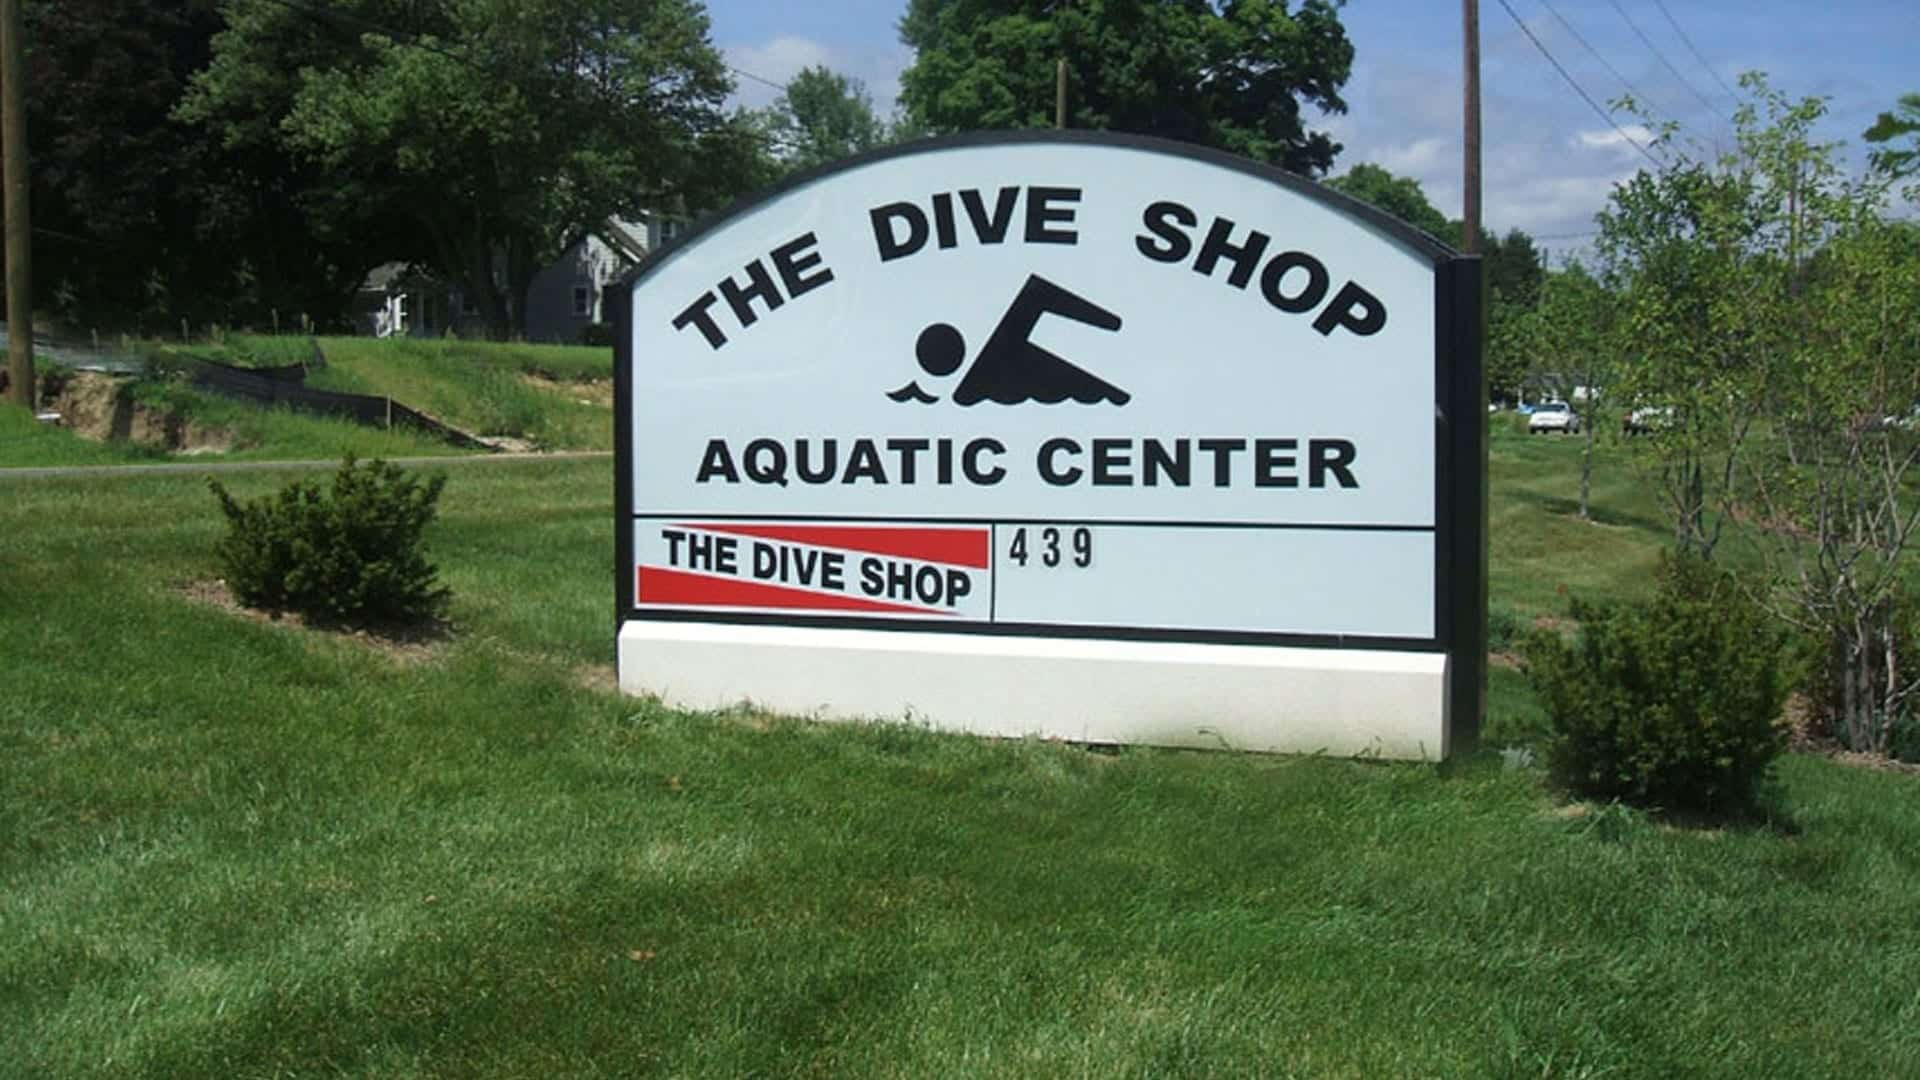 The Dive Shop - Exterior Lighted Cabinet Sign